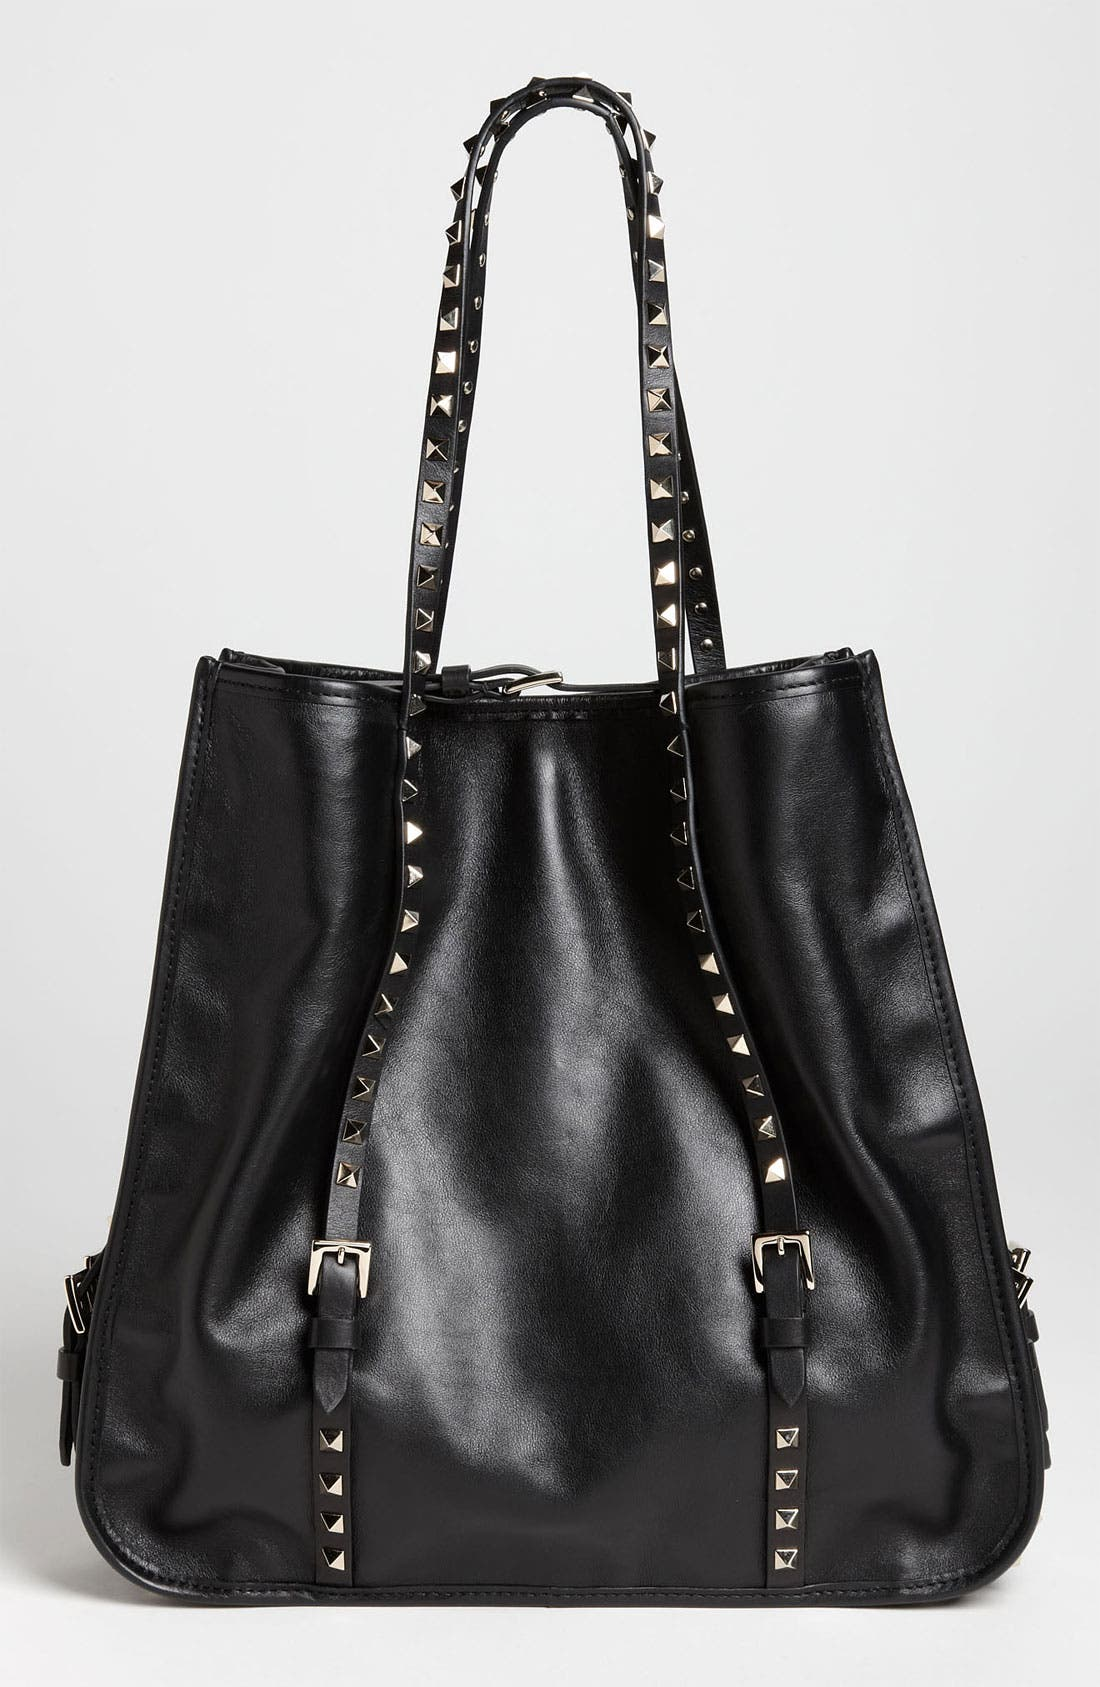 Alternate Image 1 Selected - Valentino 'Rockstud' Leather Shopper Tote